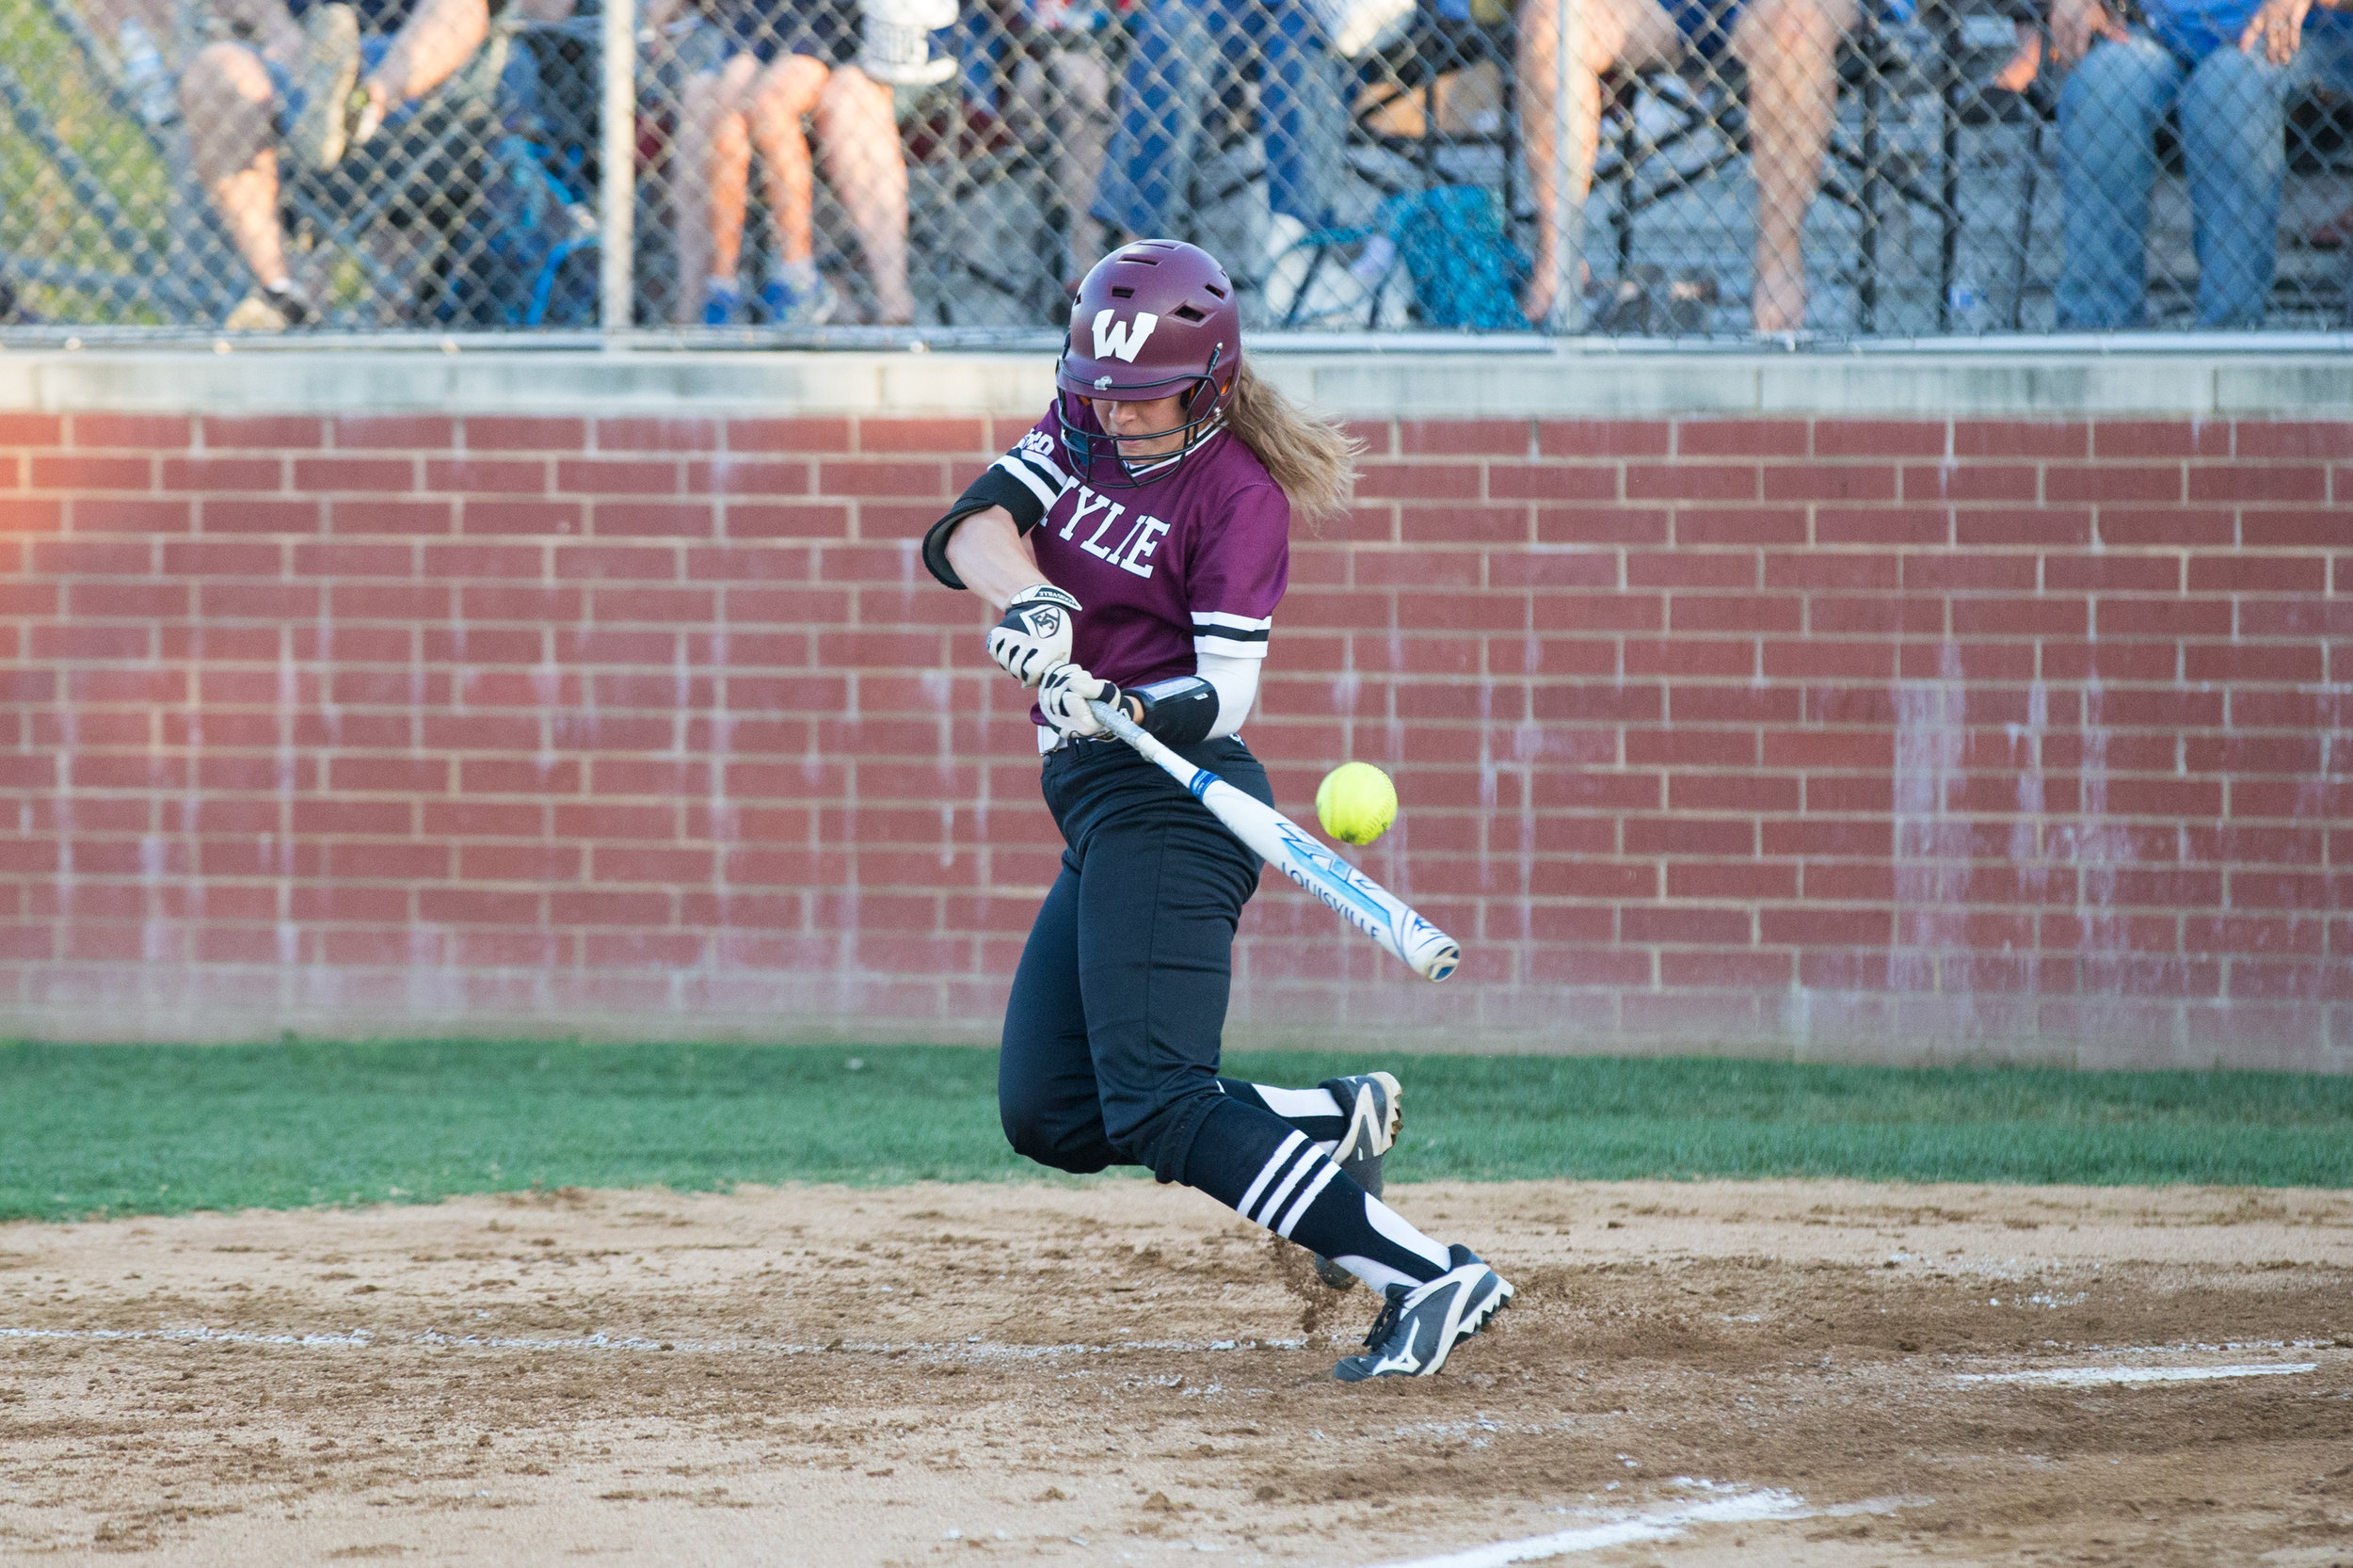 5_18 Wylie Softball-141.jpg